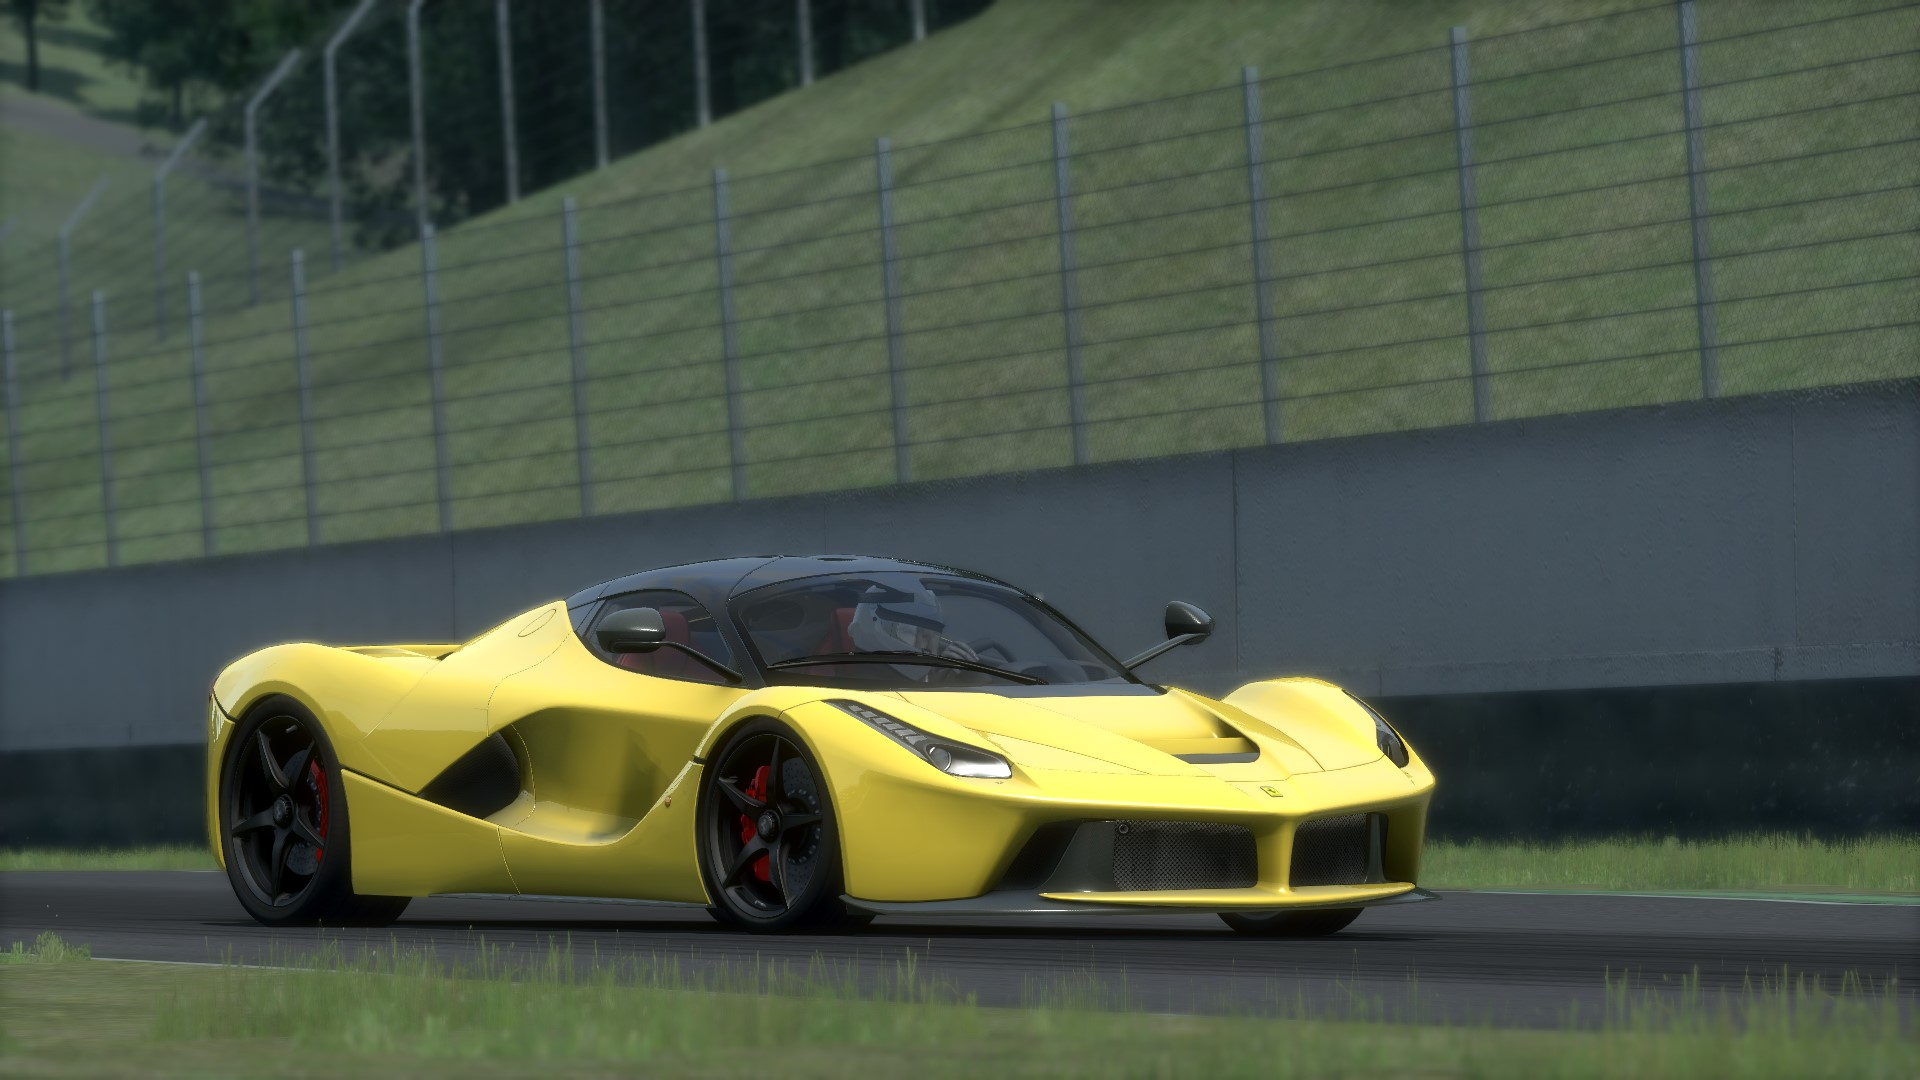 Screenshot_ferrari_laferrari_mugello_24-1-2015-18-16-46.jpg